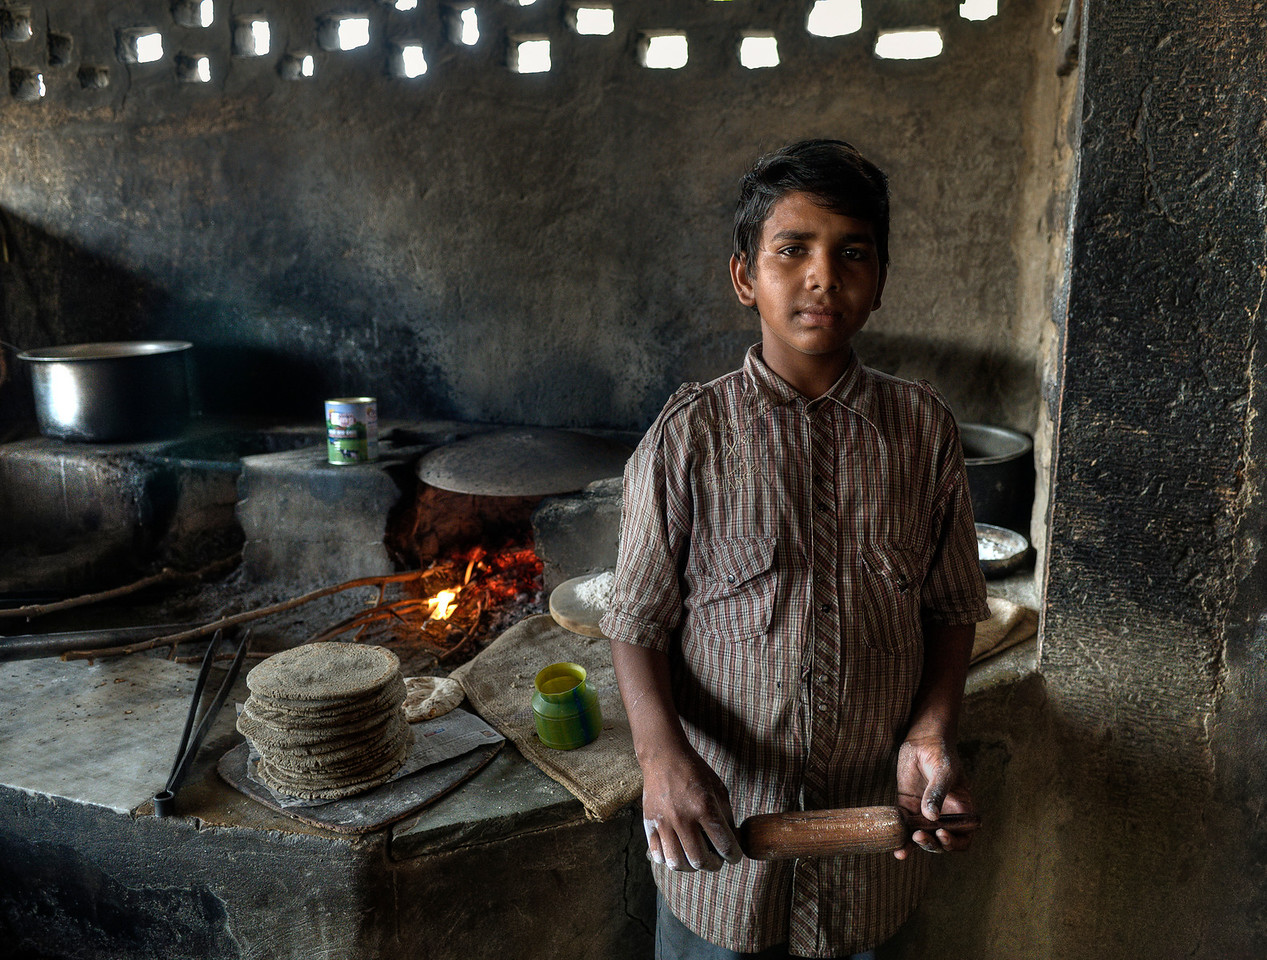 Young Waiter in a truck stop restaurant on the road a few kilometers outside Jaisalmer.<br /> <br /> Rajasthan, India, 2011.